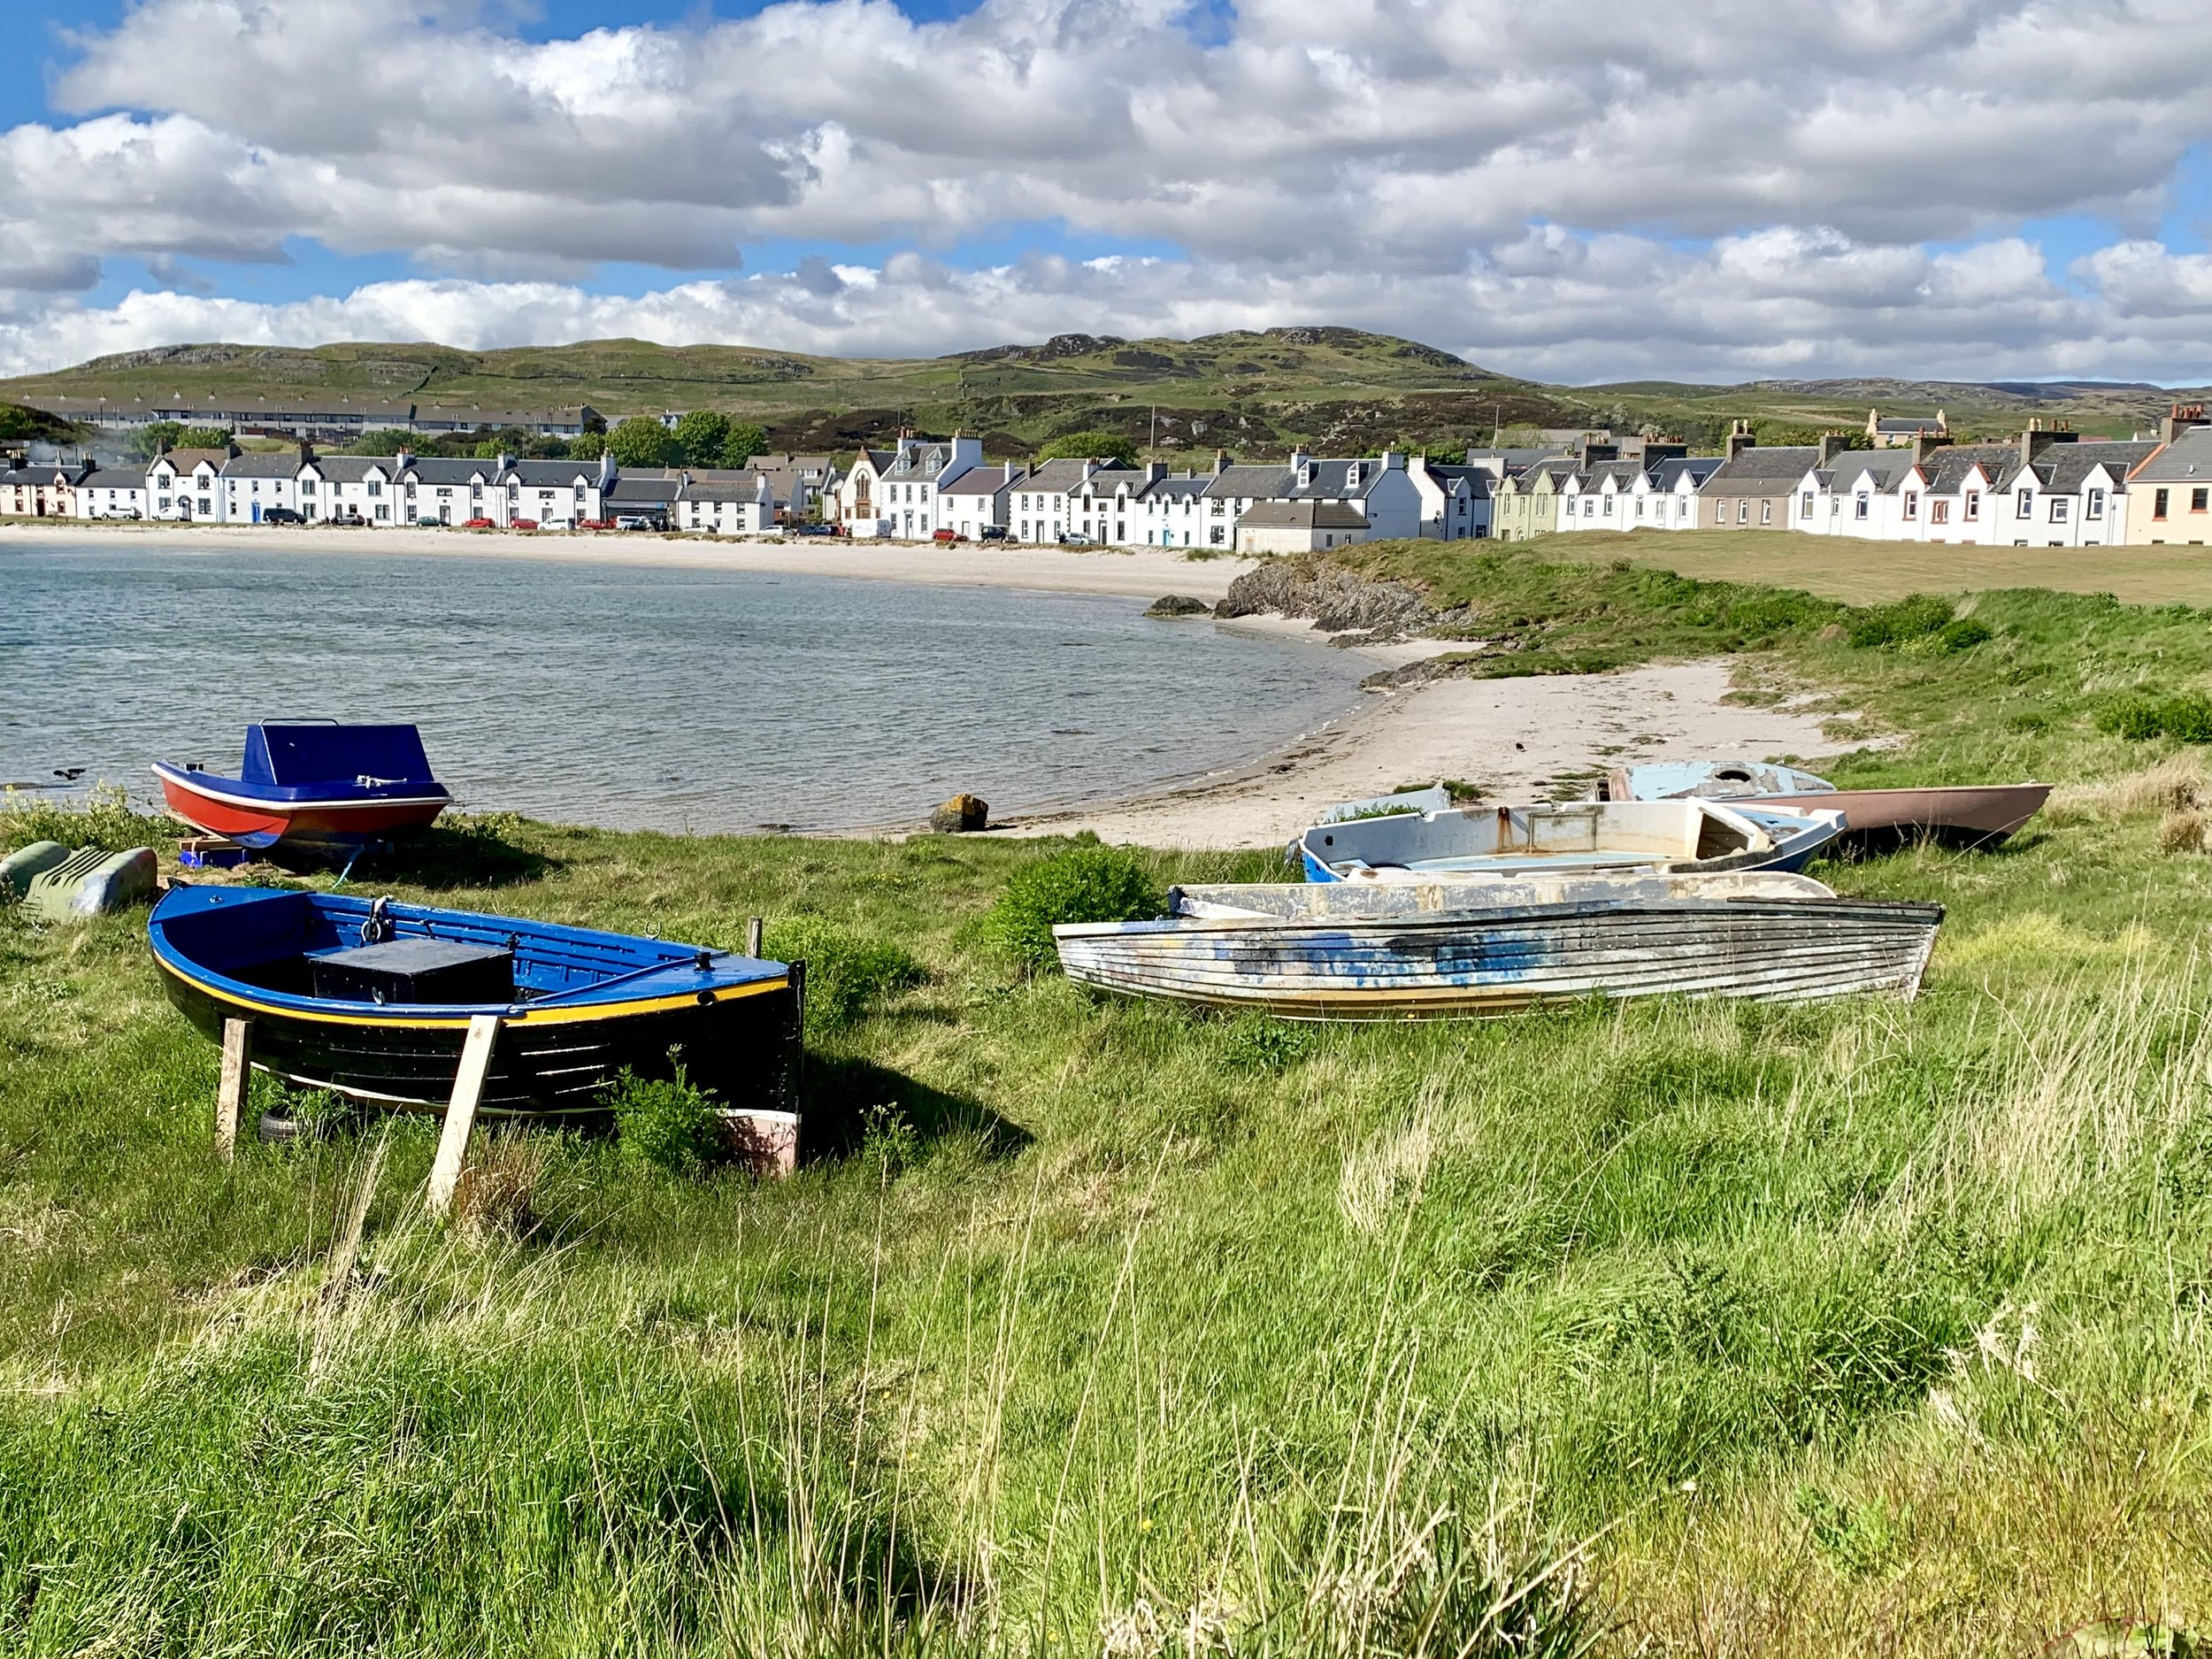 The Town of Port Ellen on Islay